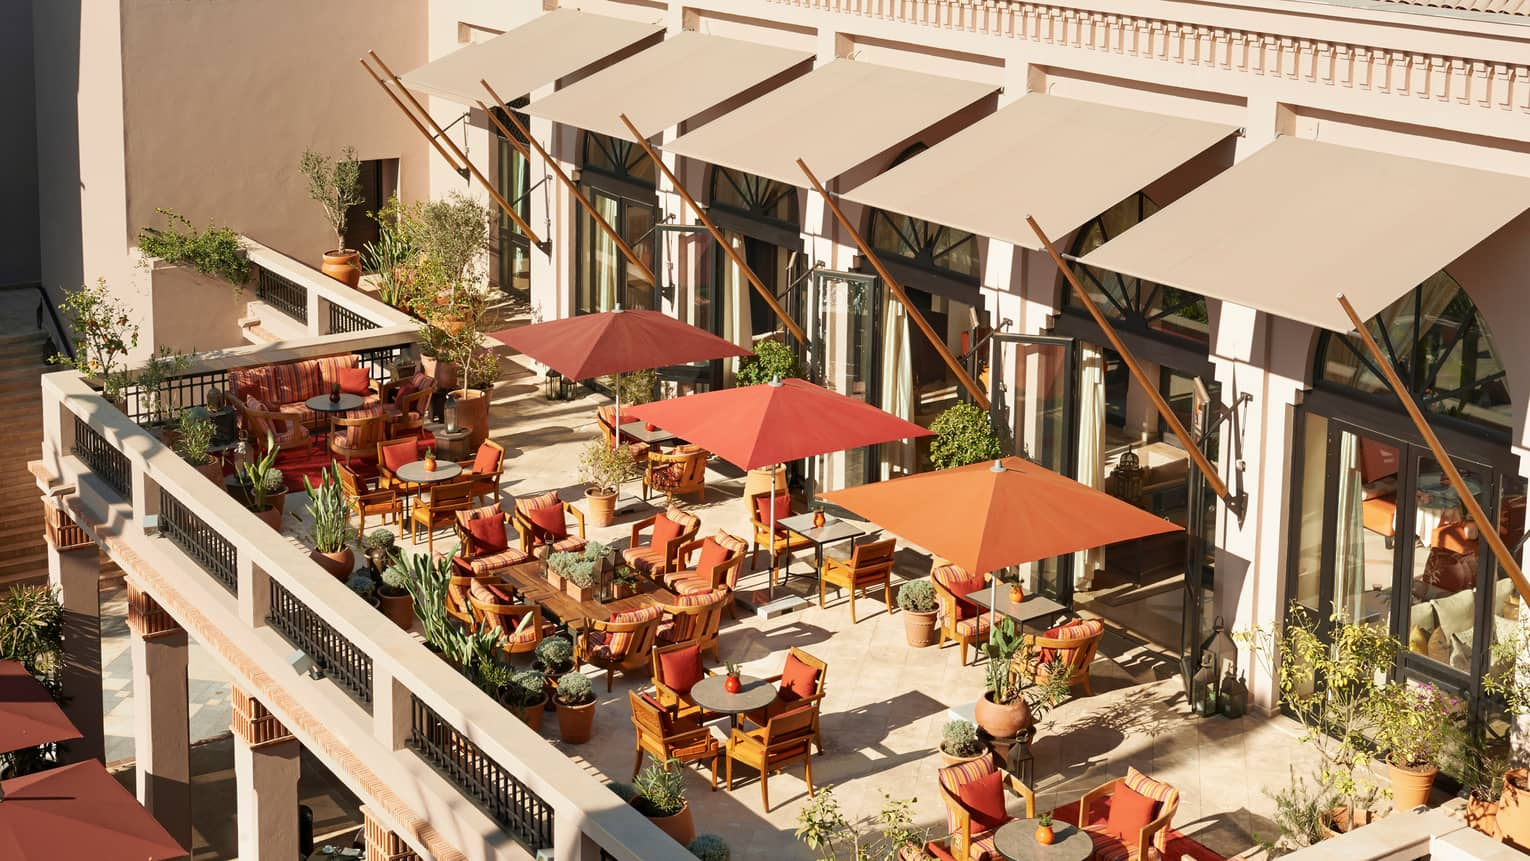 Aerial view of sunny patio with dining tables, chairs, orange umbrellas